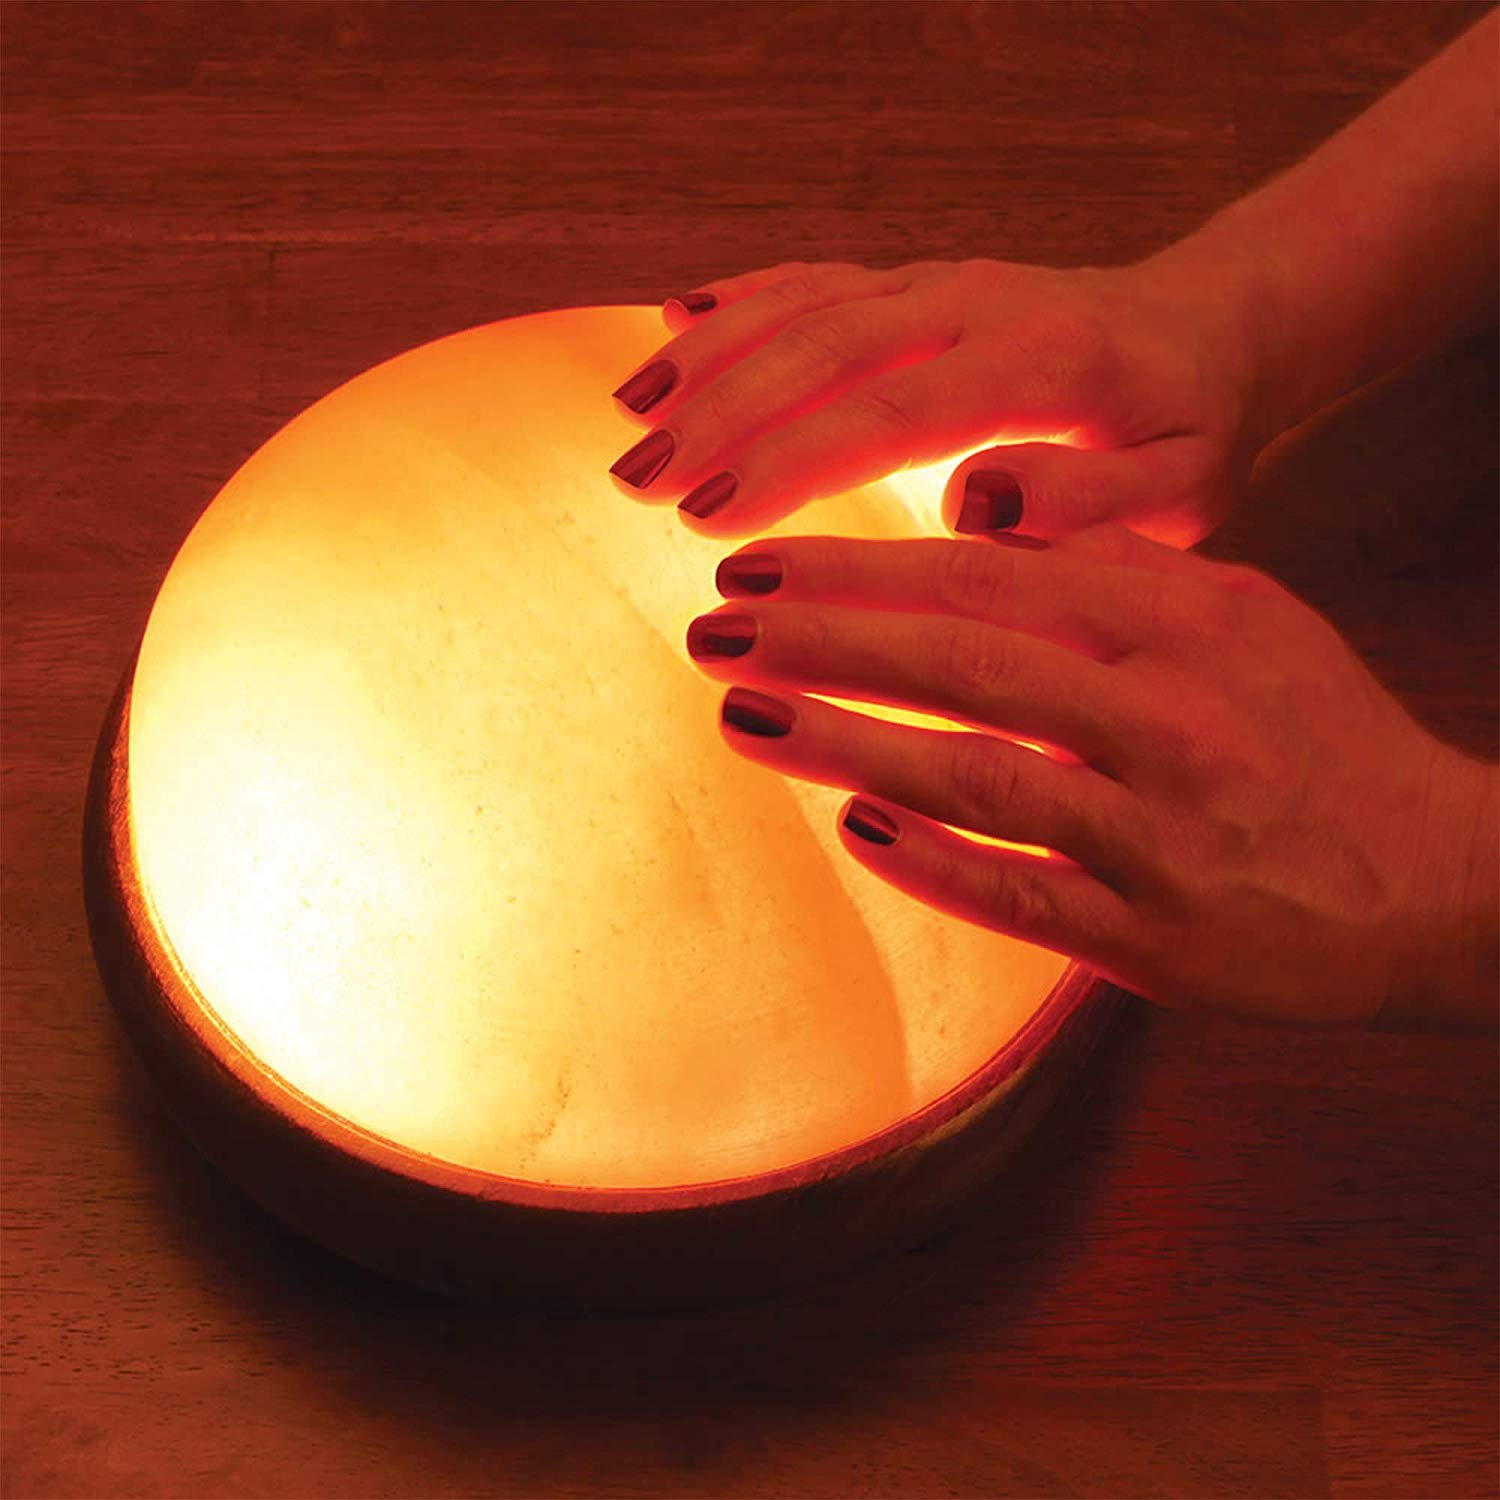 Himalayan Foot Detox Lamp | Salt Foot Lamp | Authentic Hand Carved Himalayan Salt Detoxer | Night Light Lamp with Rosewood Base | Pink Salt Mood Lightning Amber Glow Lamp for Achy & Swollen Feet